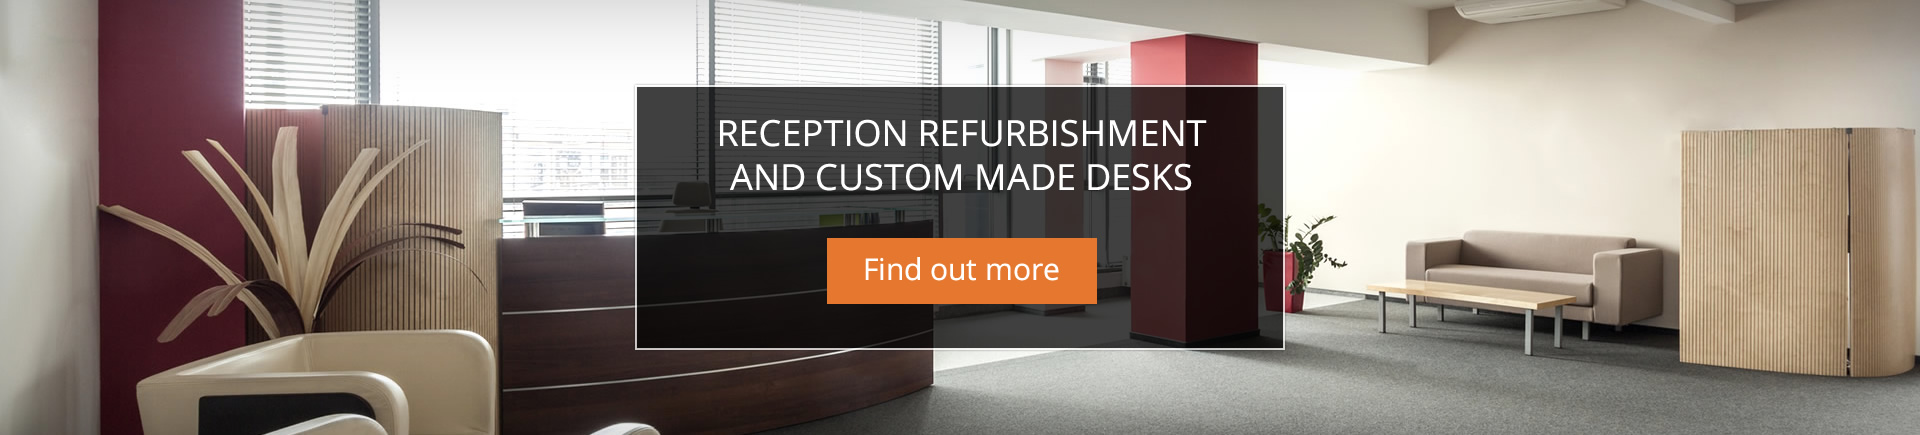 RECEPTION REFURBISHMENT AND CUSTOM MADE DESKS